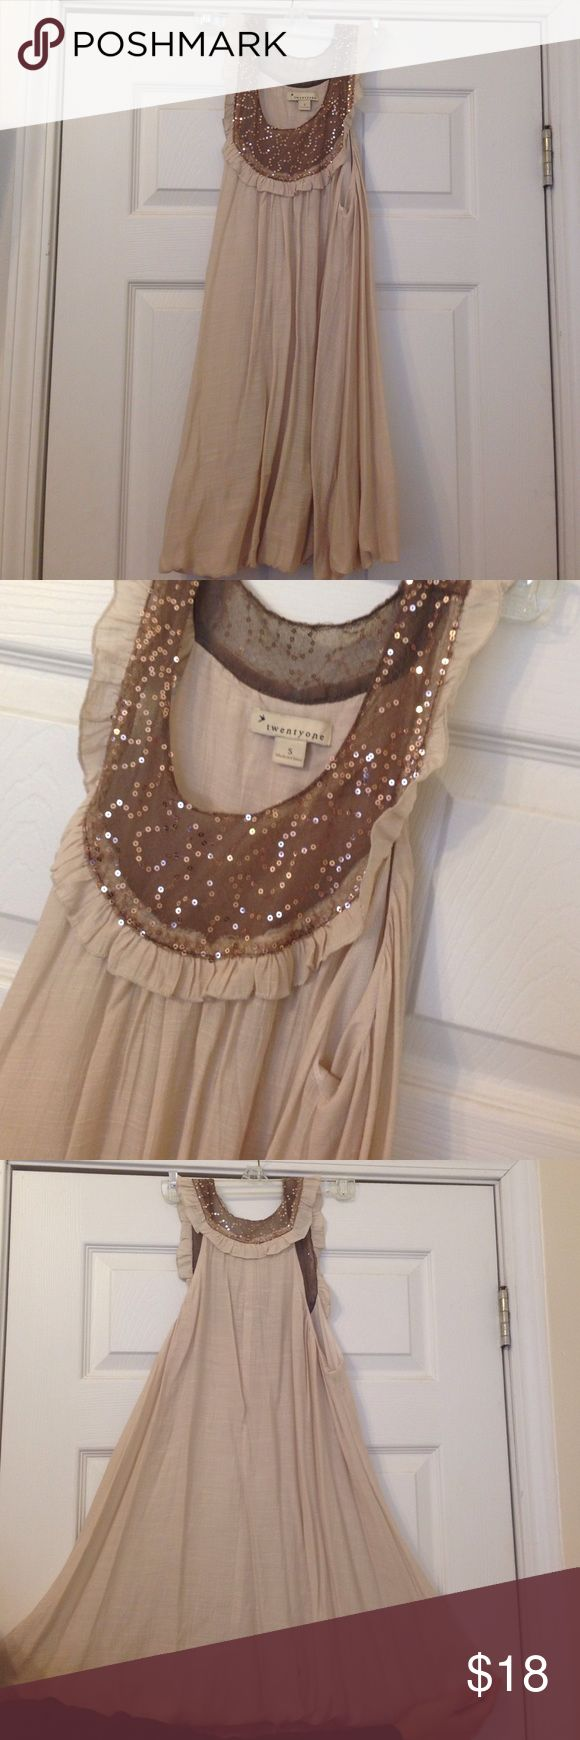 F21 beige sequin collar dress Worn once. Great for a night out! Knee length Forever 21 Dresses